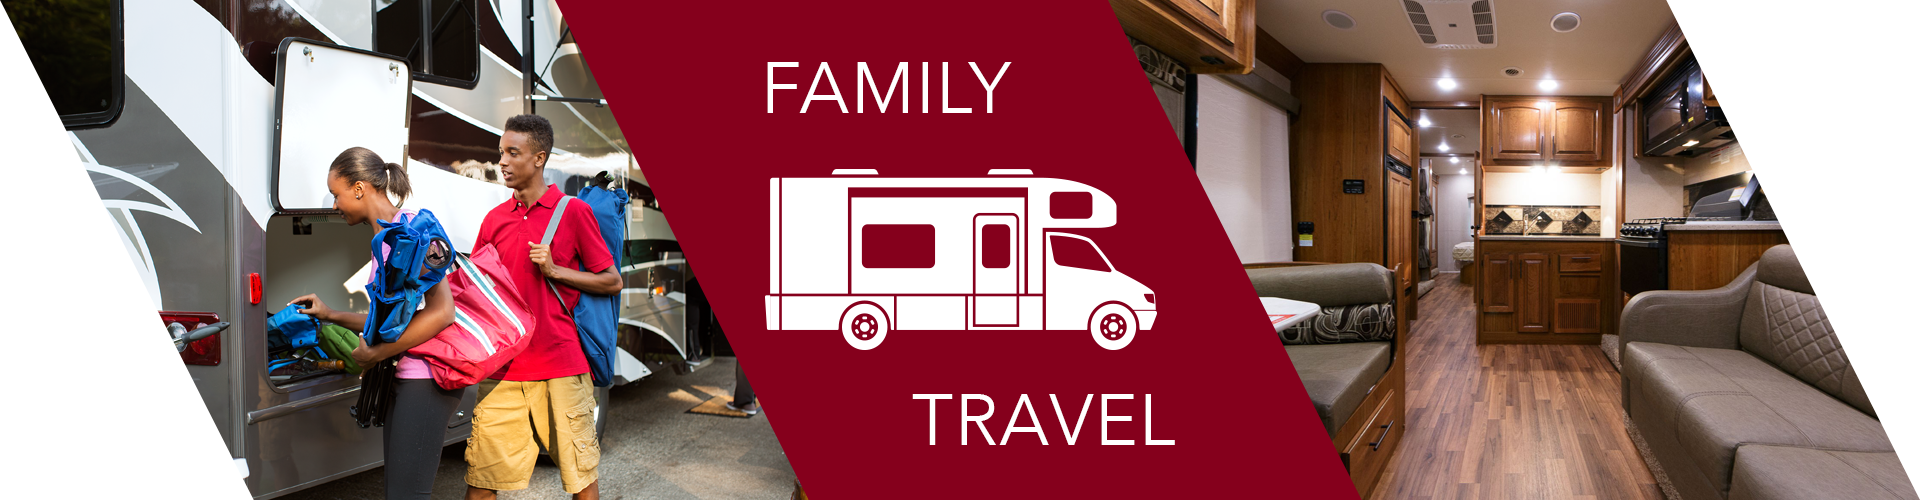 Class C Motorhome for comfortable family travel